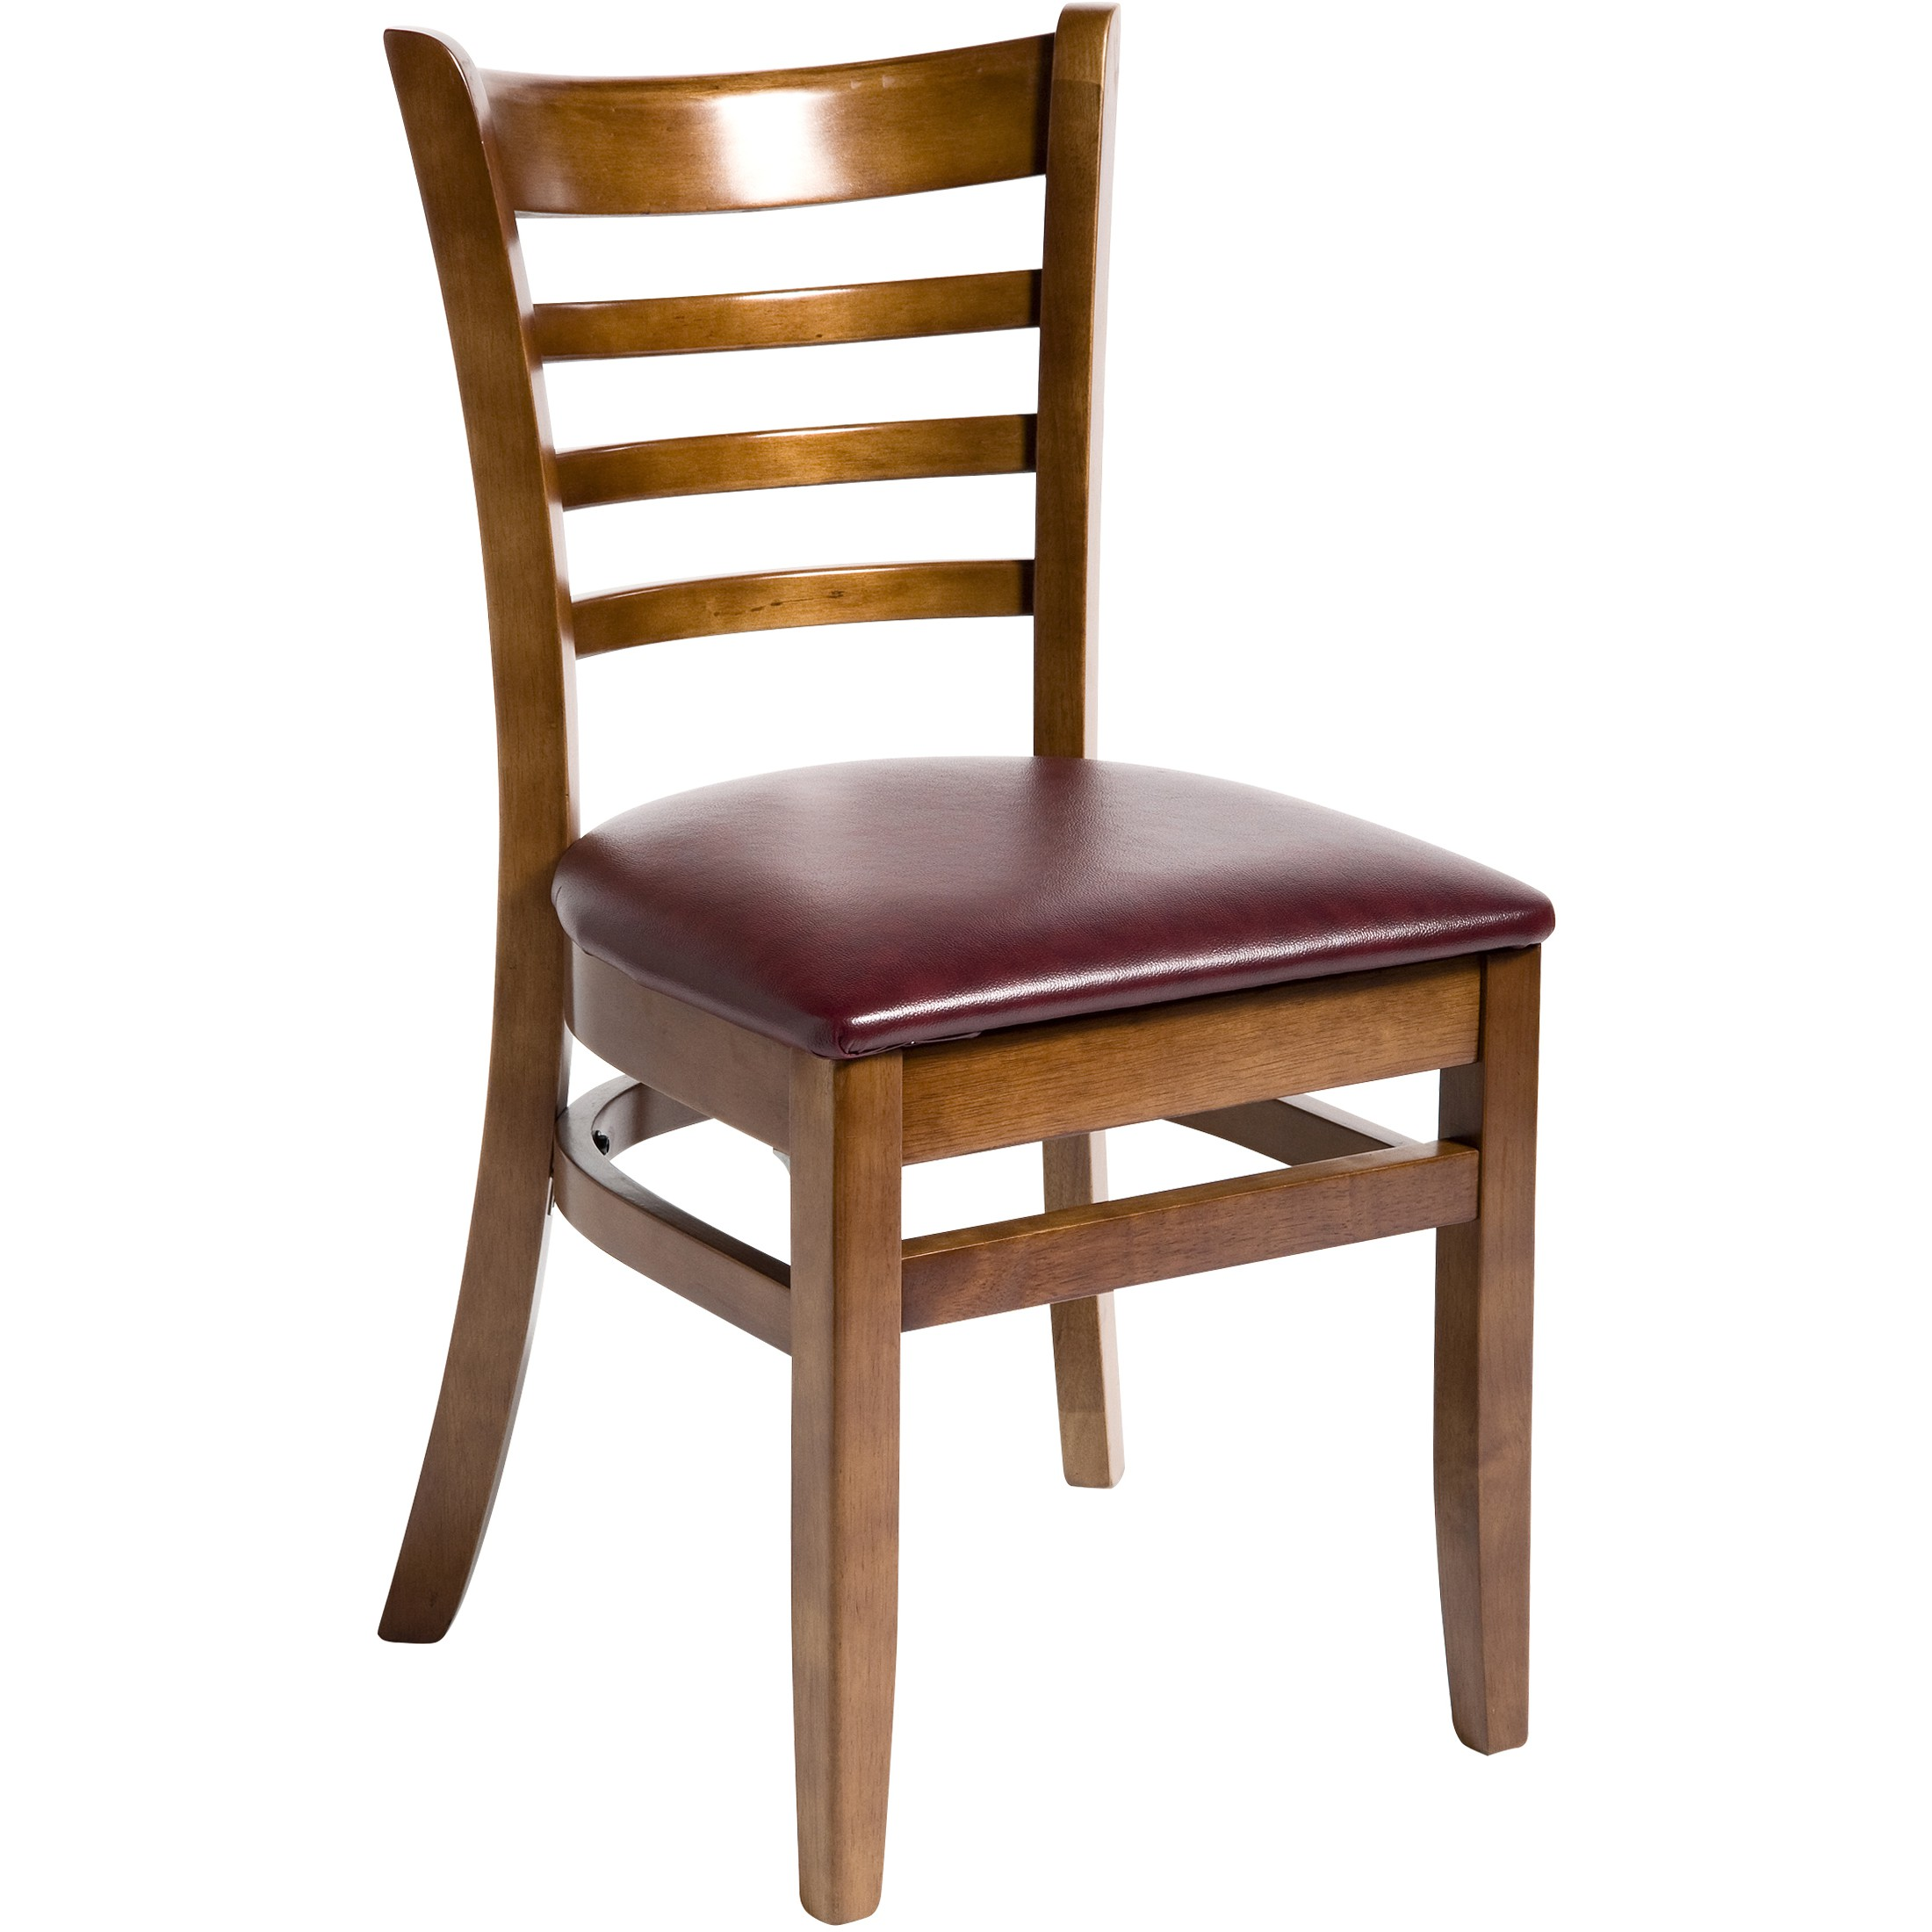 Restaurant Chairs mercial Chairs for Sale